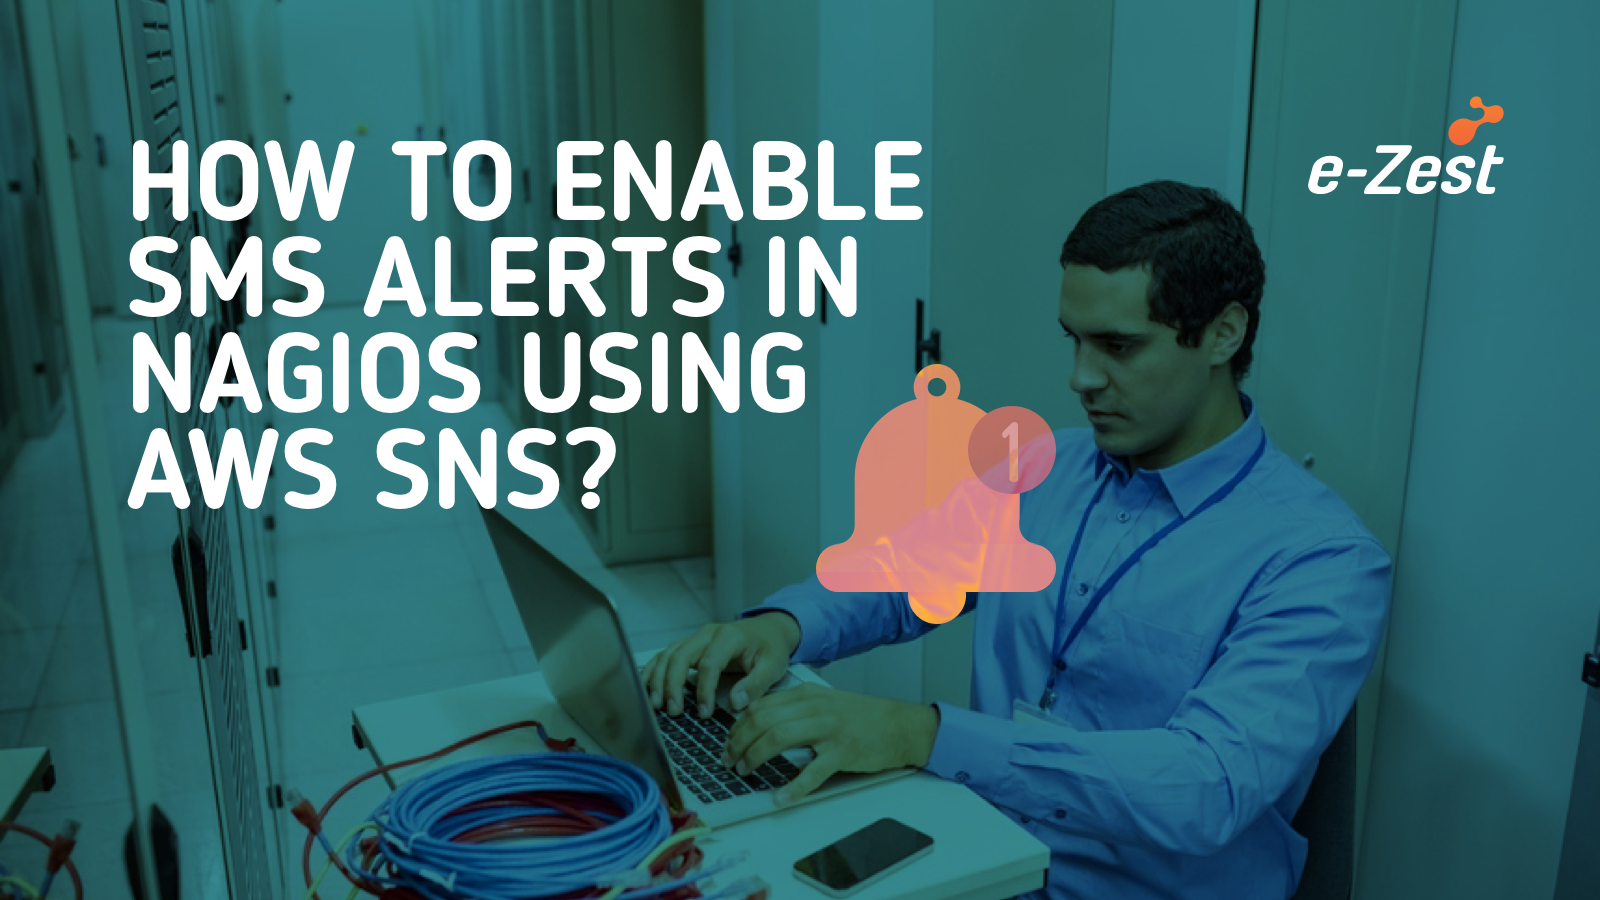 How to enable SMS alerts in Nagios using AWS SNS